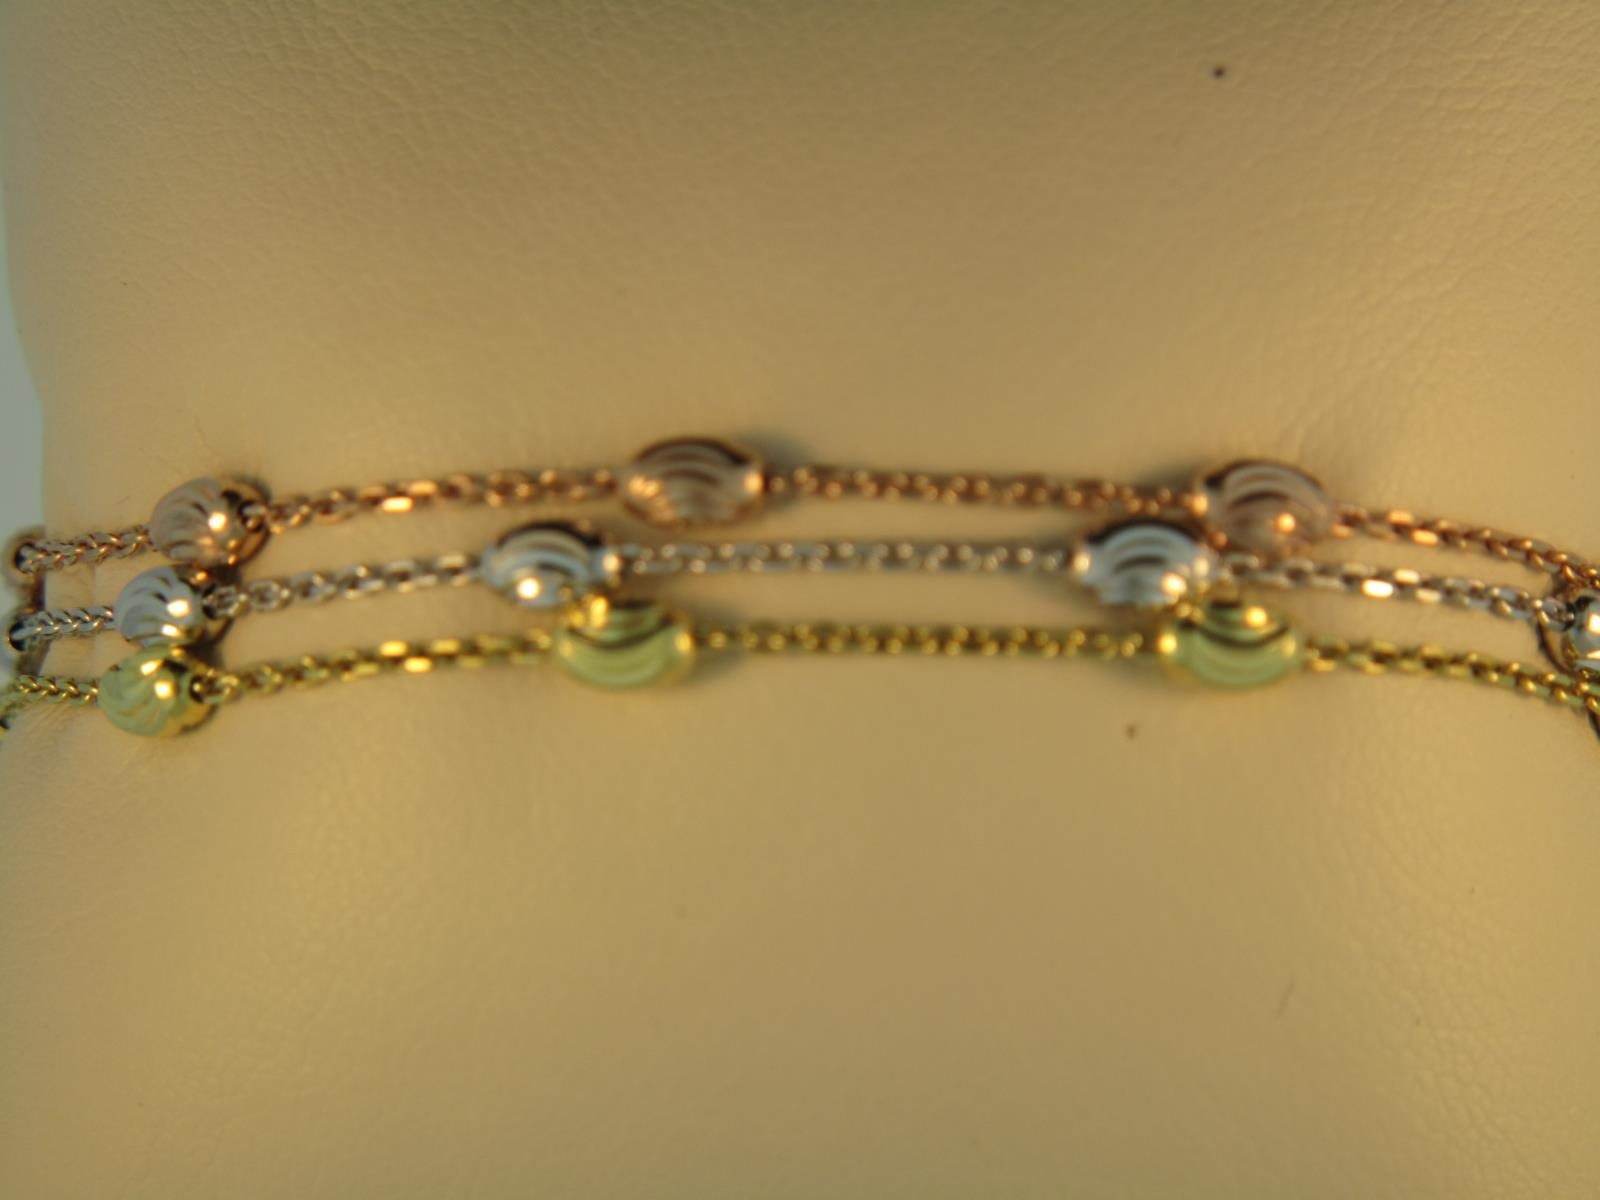 Bracelet by Officina Bernardi